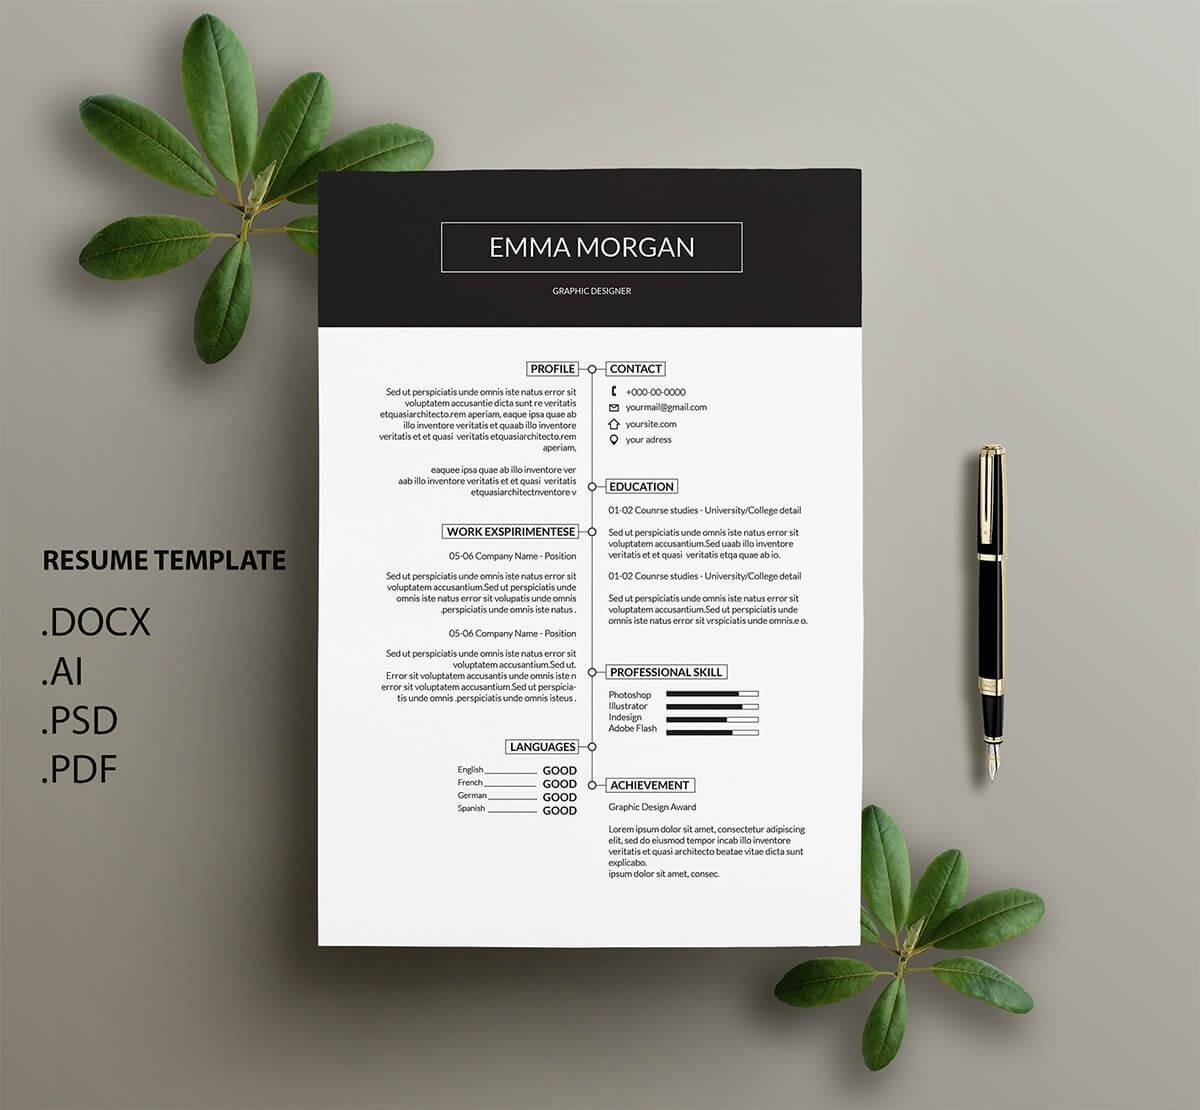 One-Page Resume Templates: 15 Examples to Download and Use Now